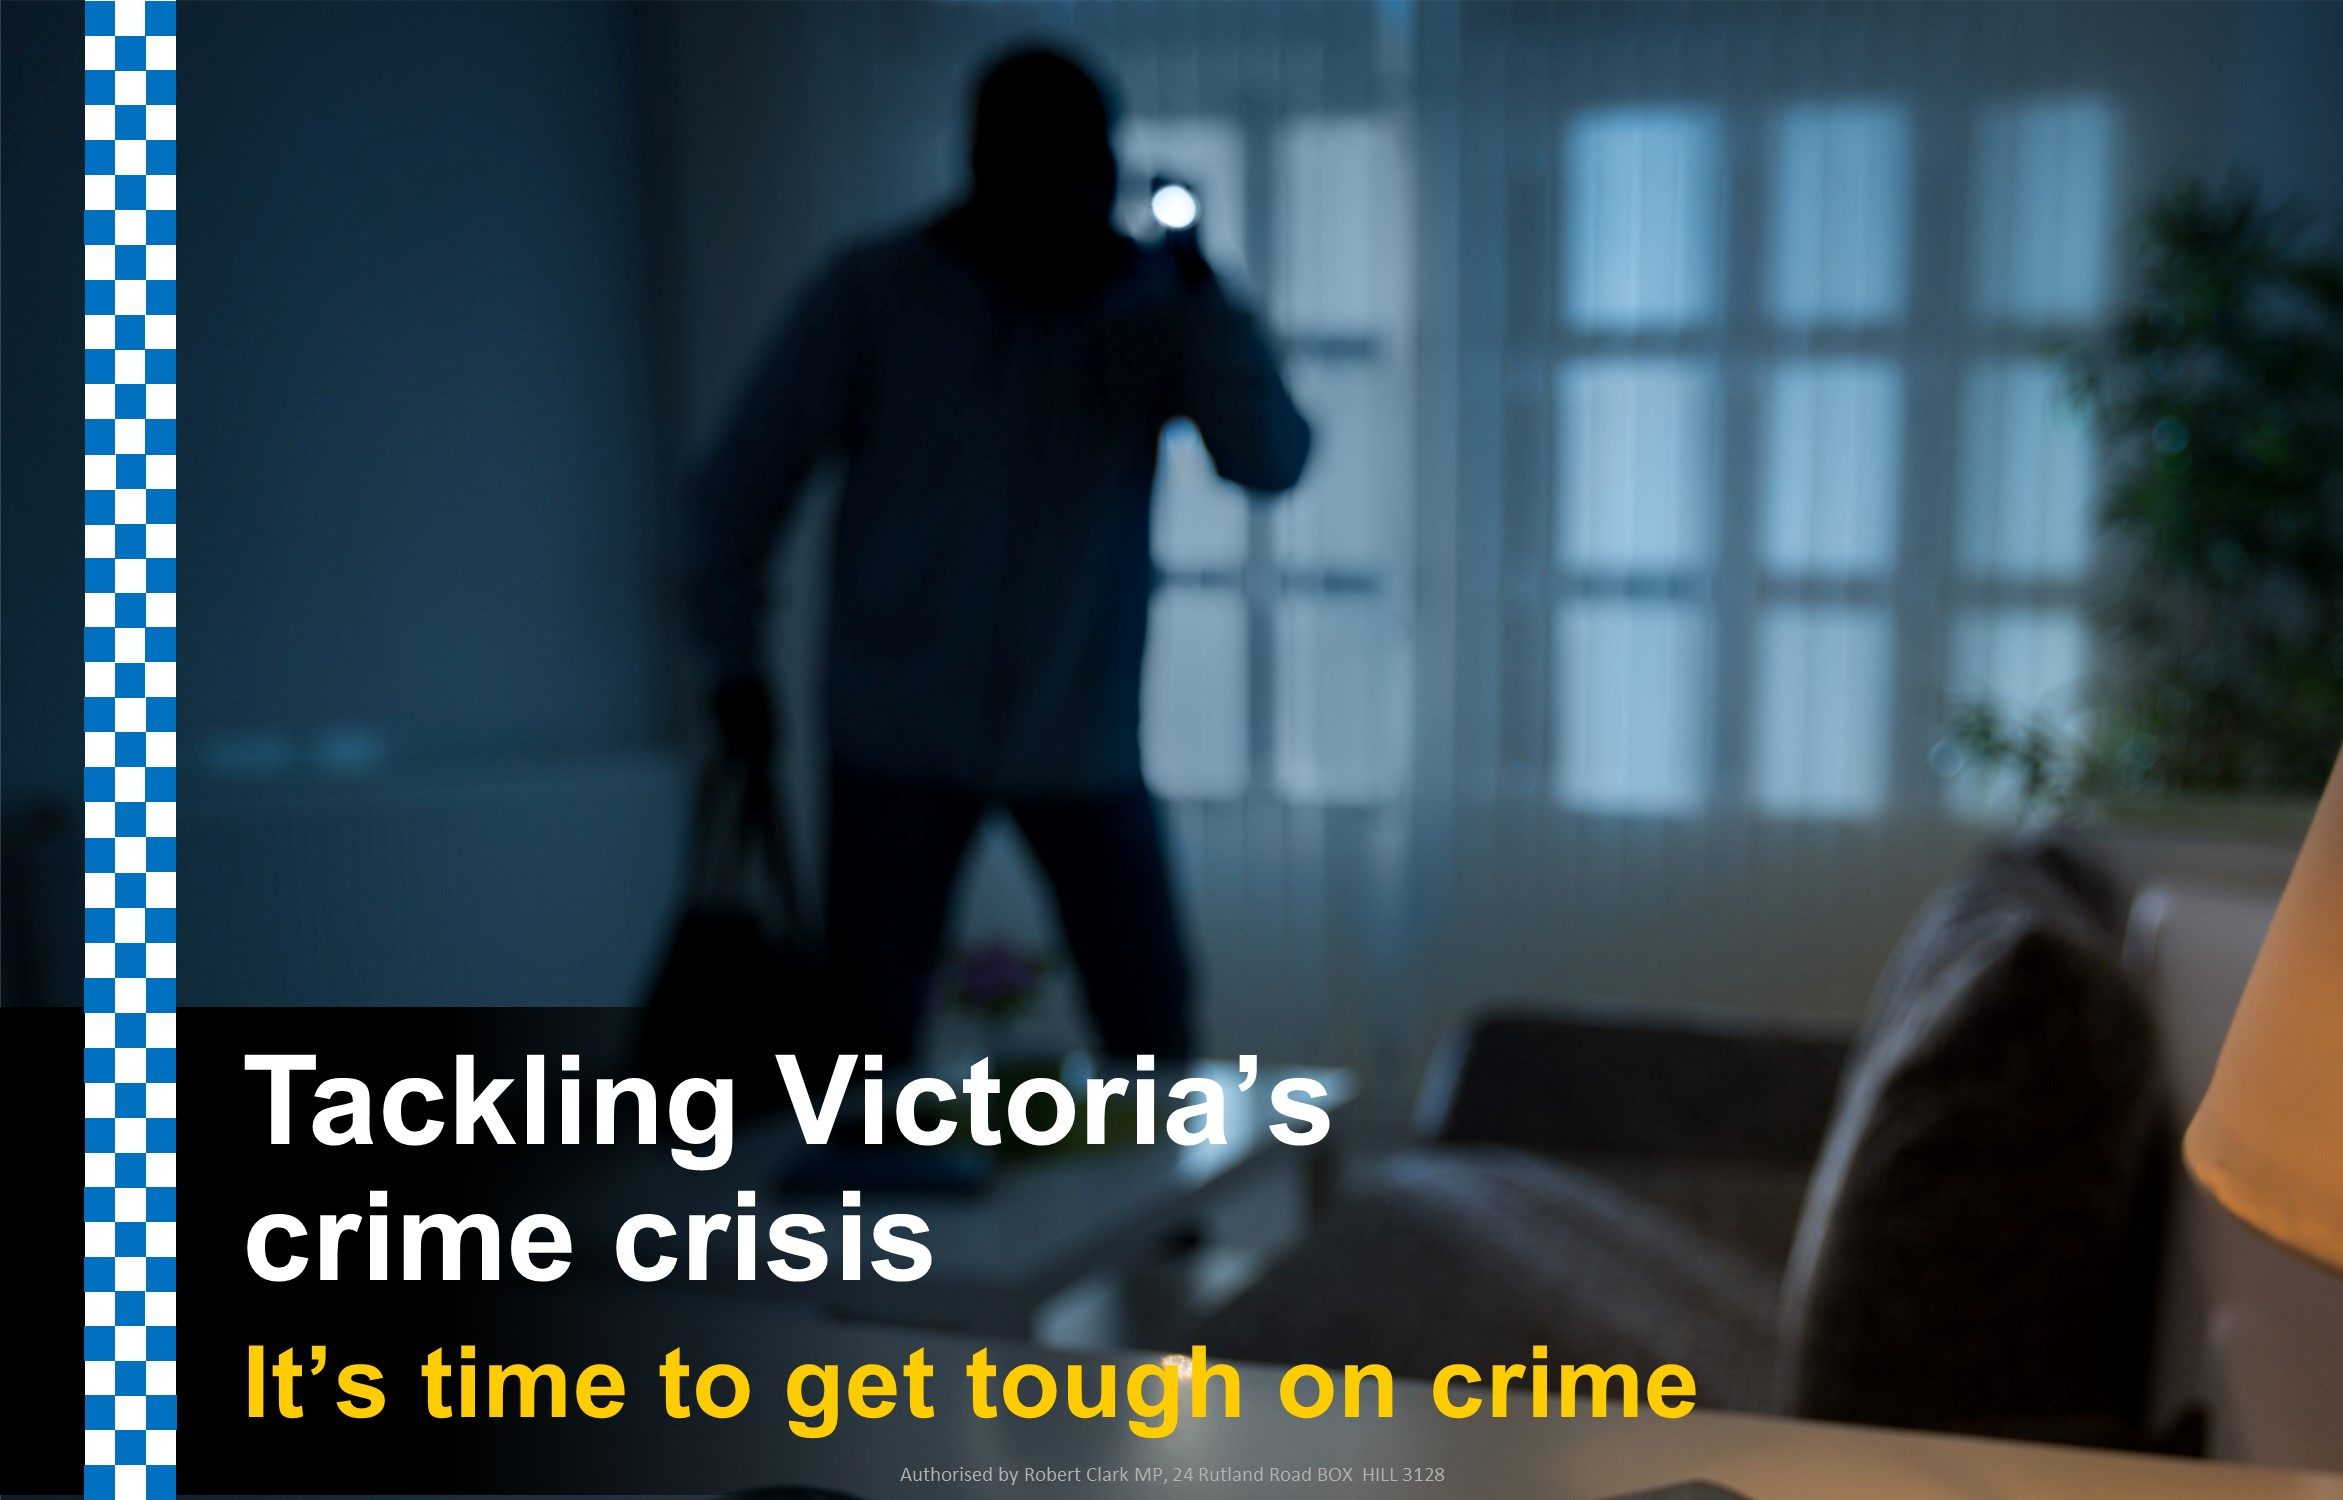 It's time to get tough on crime - the Liberal Nationals' solutions